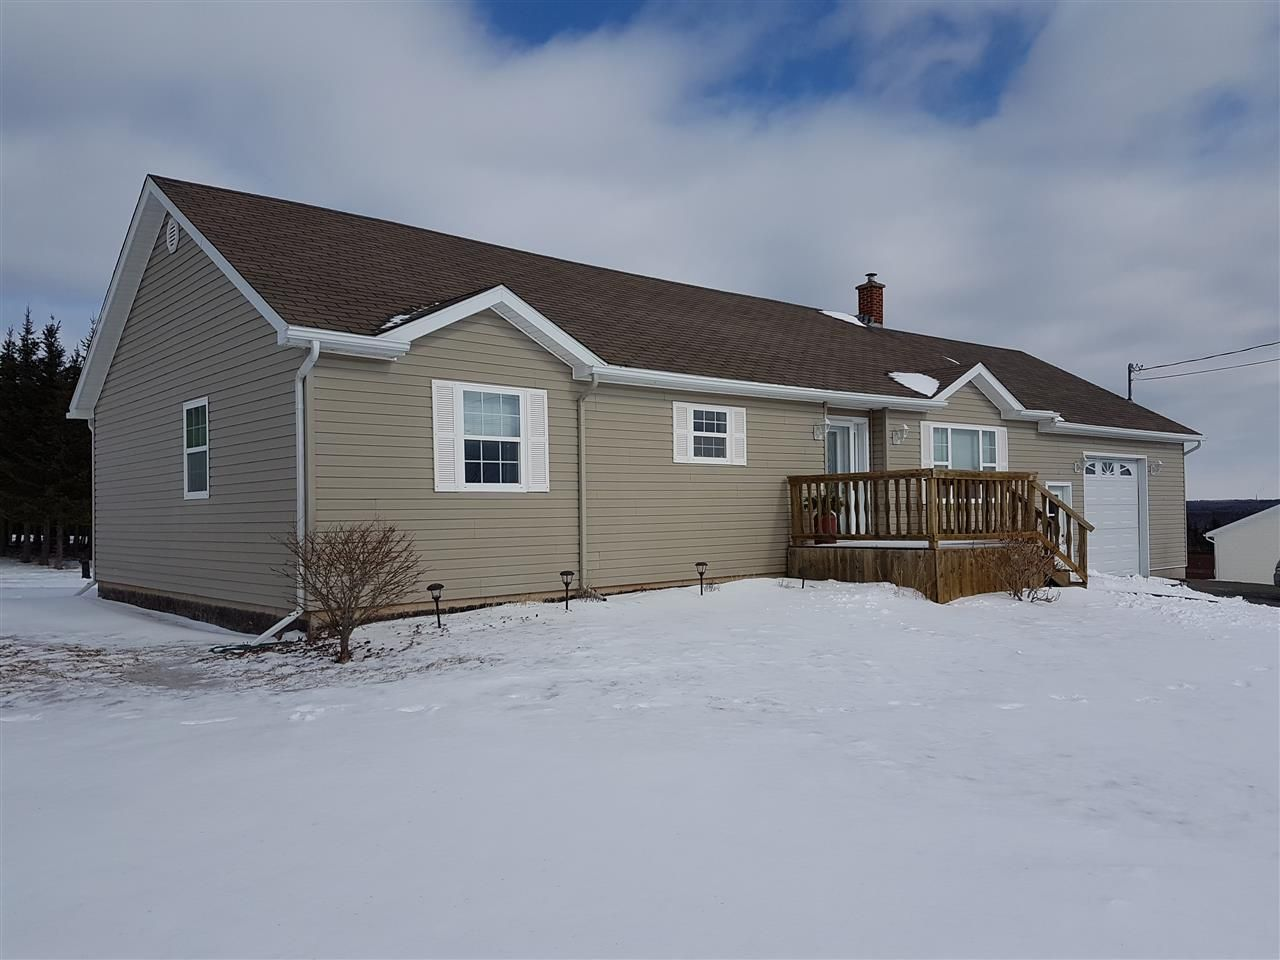 Main Photo: 116 Green Hill Road in Alma: 108-Rural Pictou County Residential for sale (Northern Region)  : MLS®# 201903360